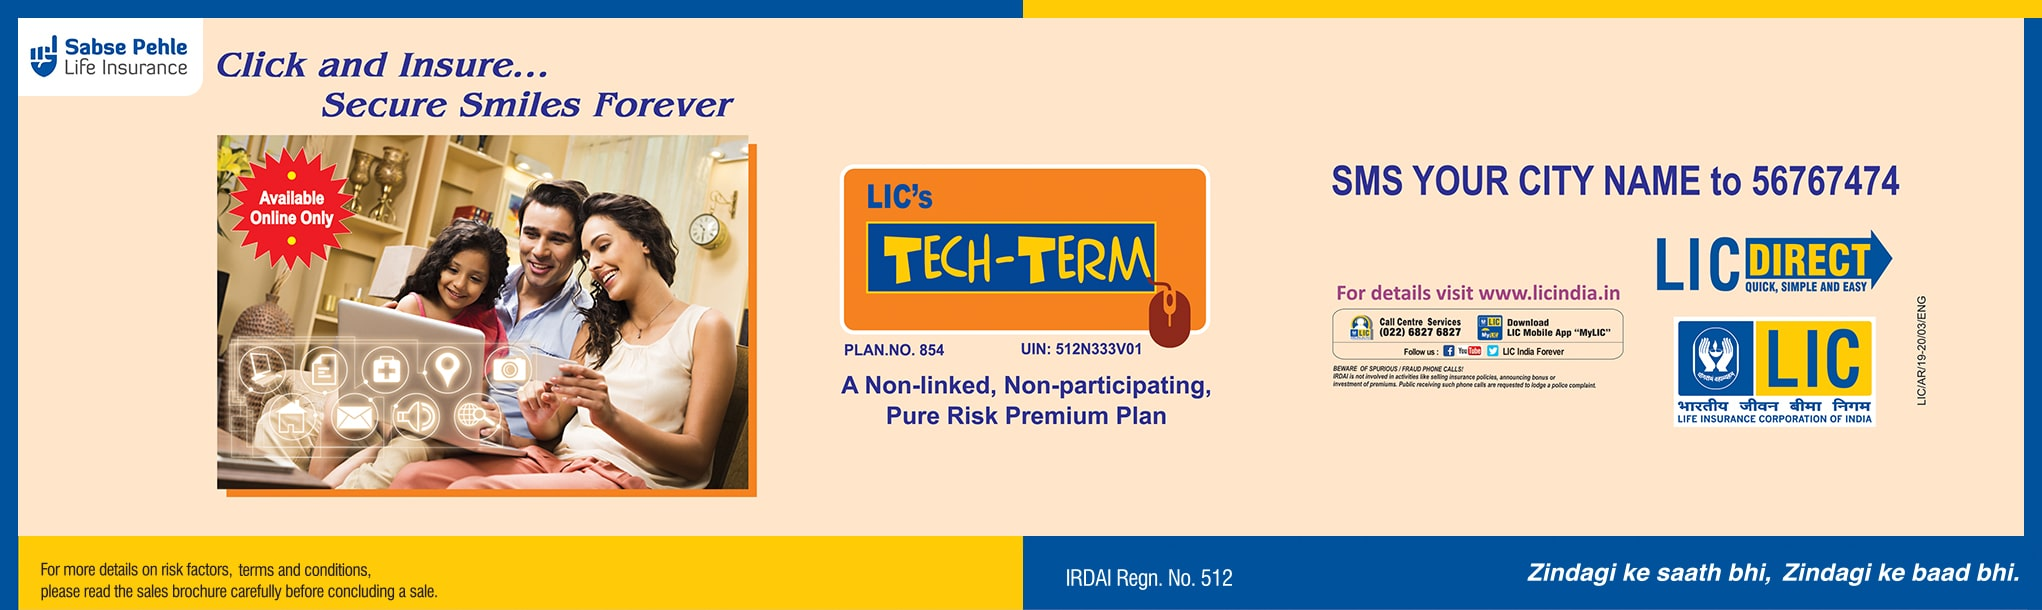 LIC Policy Banner-1